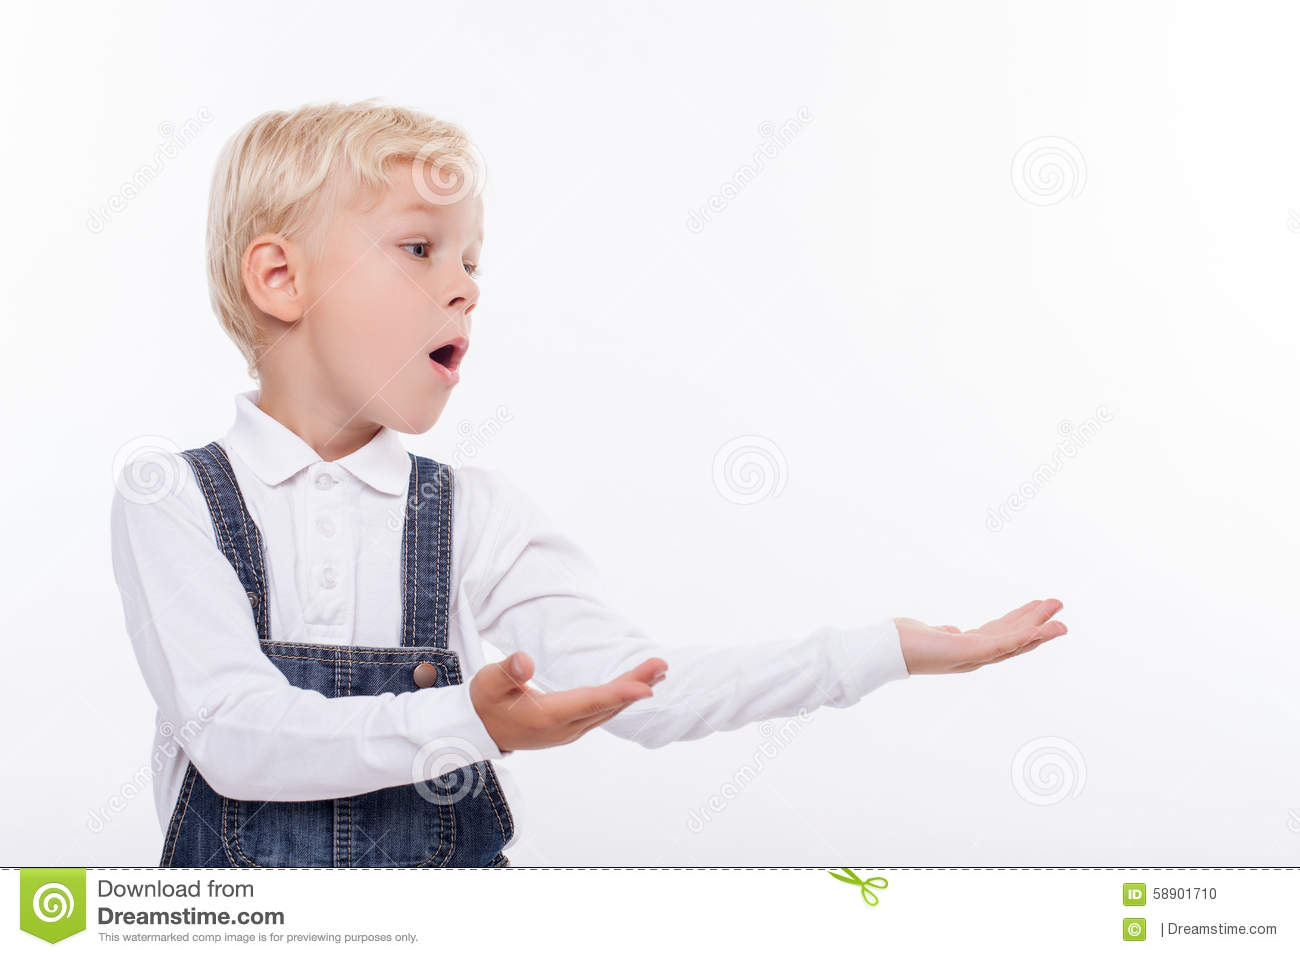 Cute male child is presenting something with joy